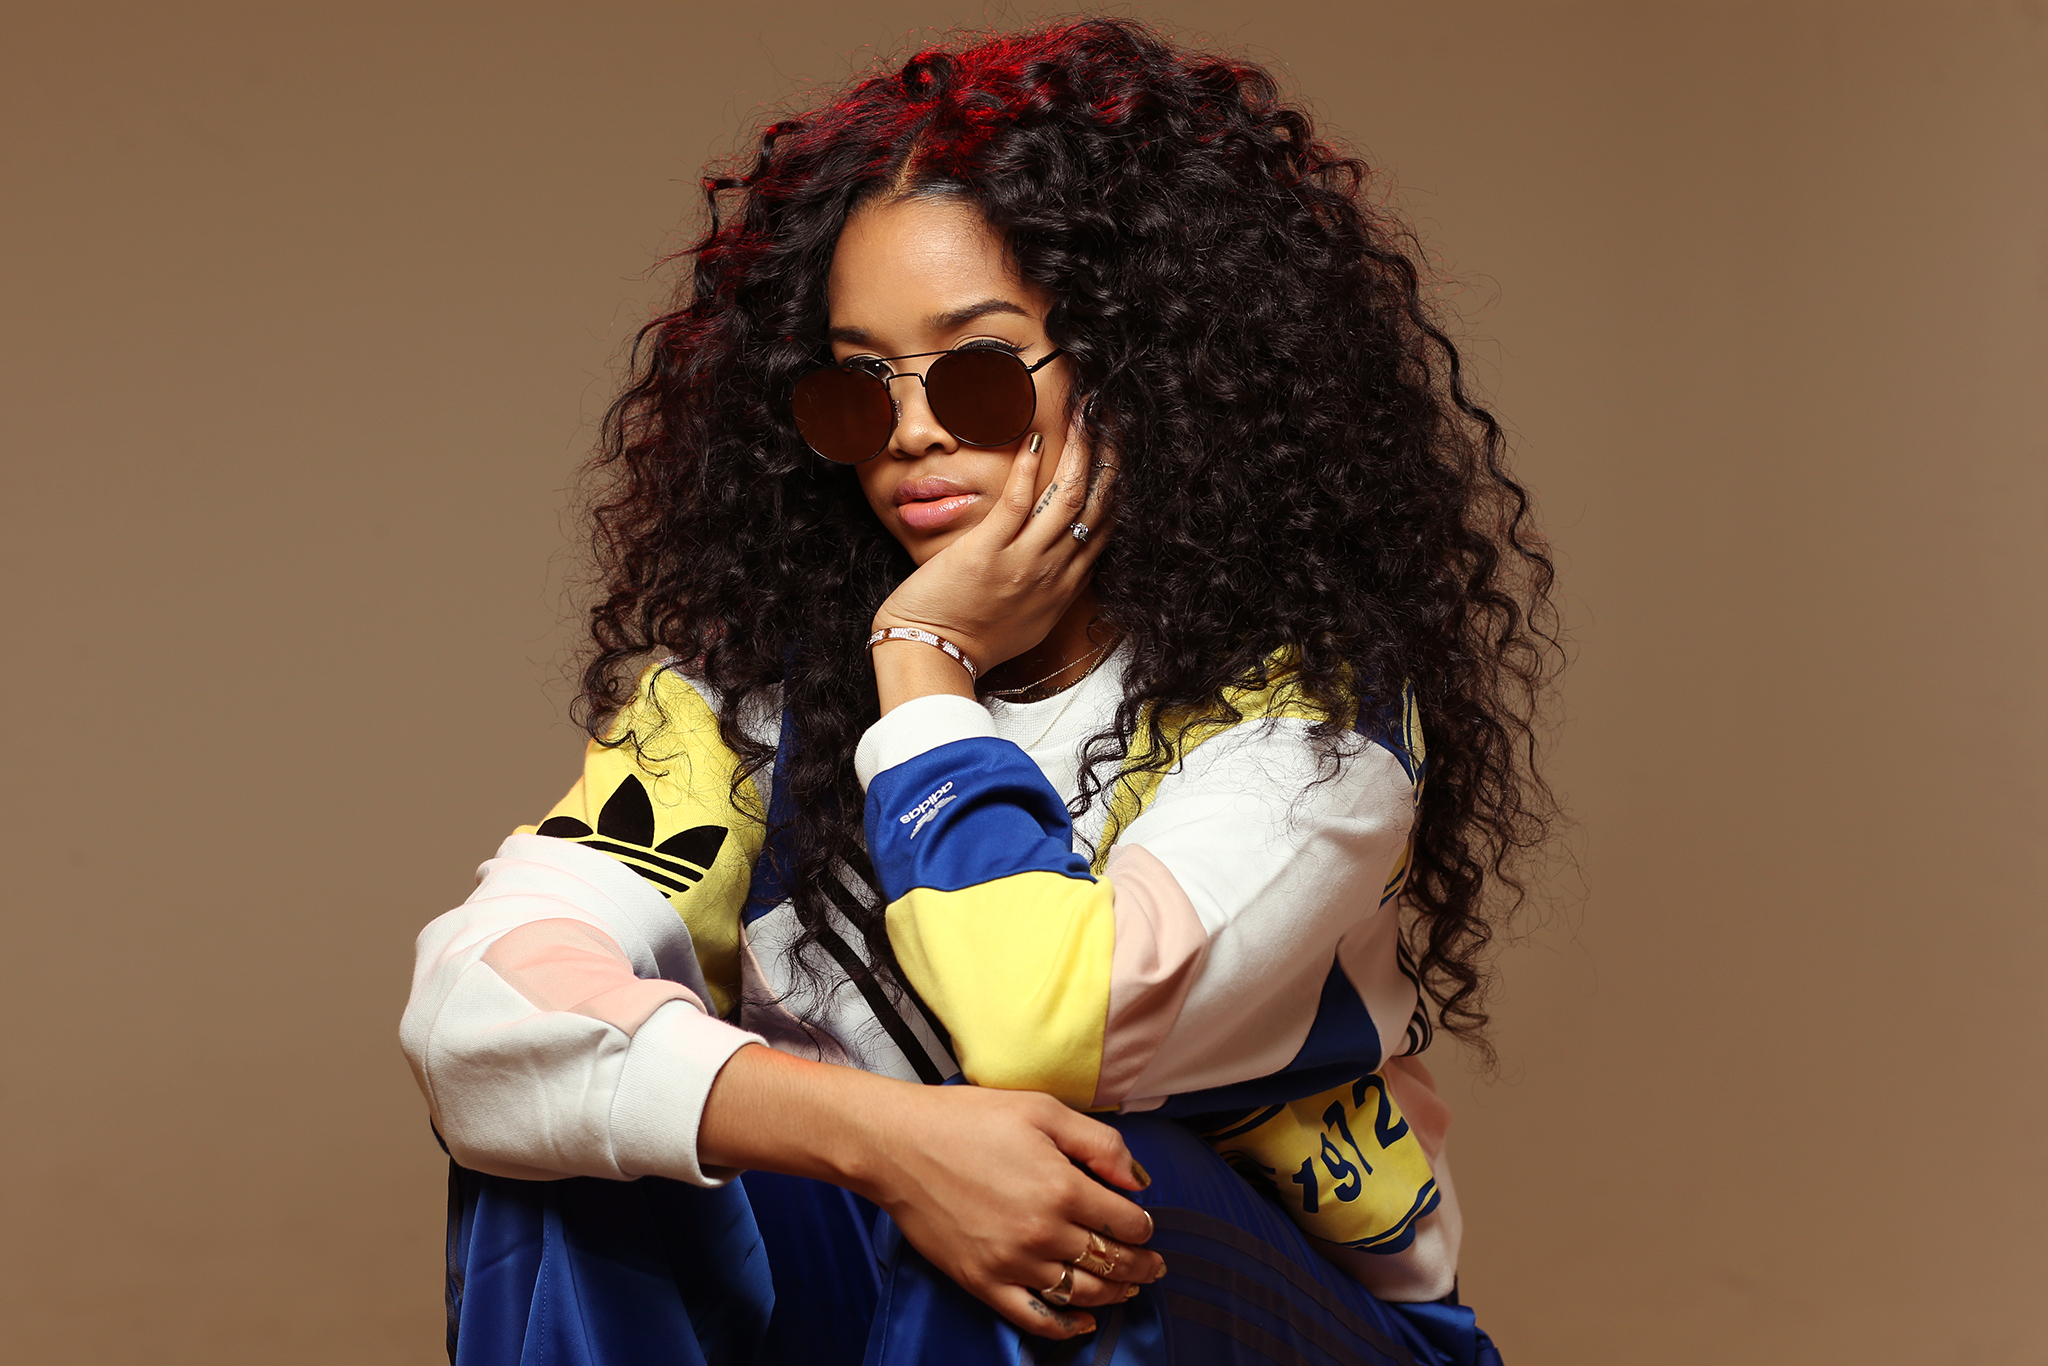 H.E.R. Finally Reveals All — but Not How You'd Expect – WWD